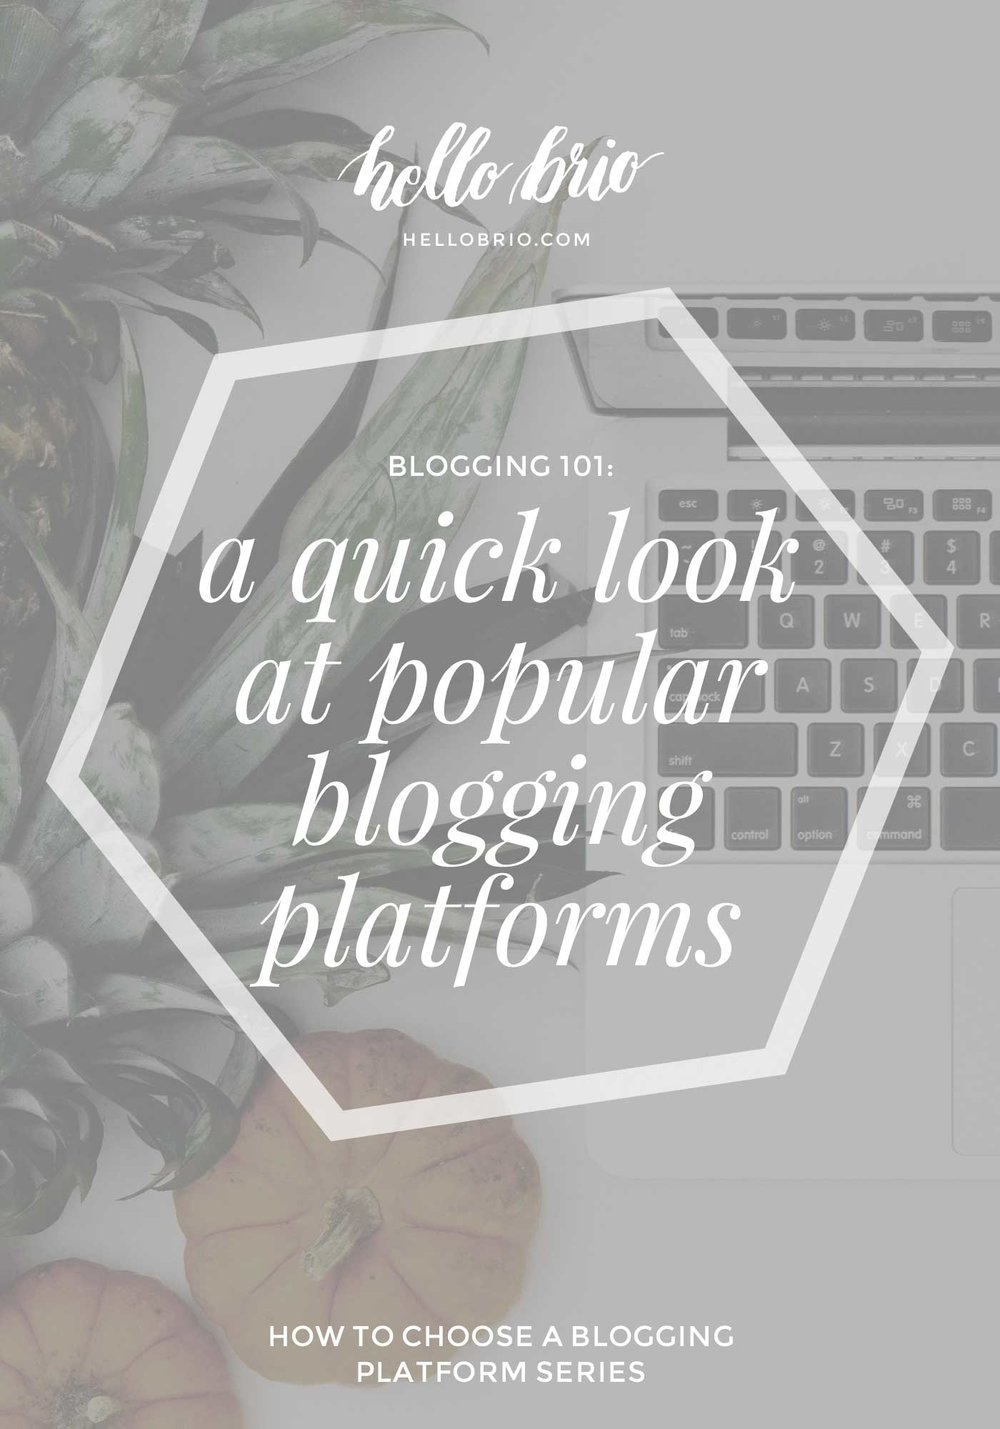 how to choose a blogging platform quick start guide on hellobrio.com